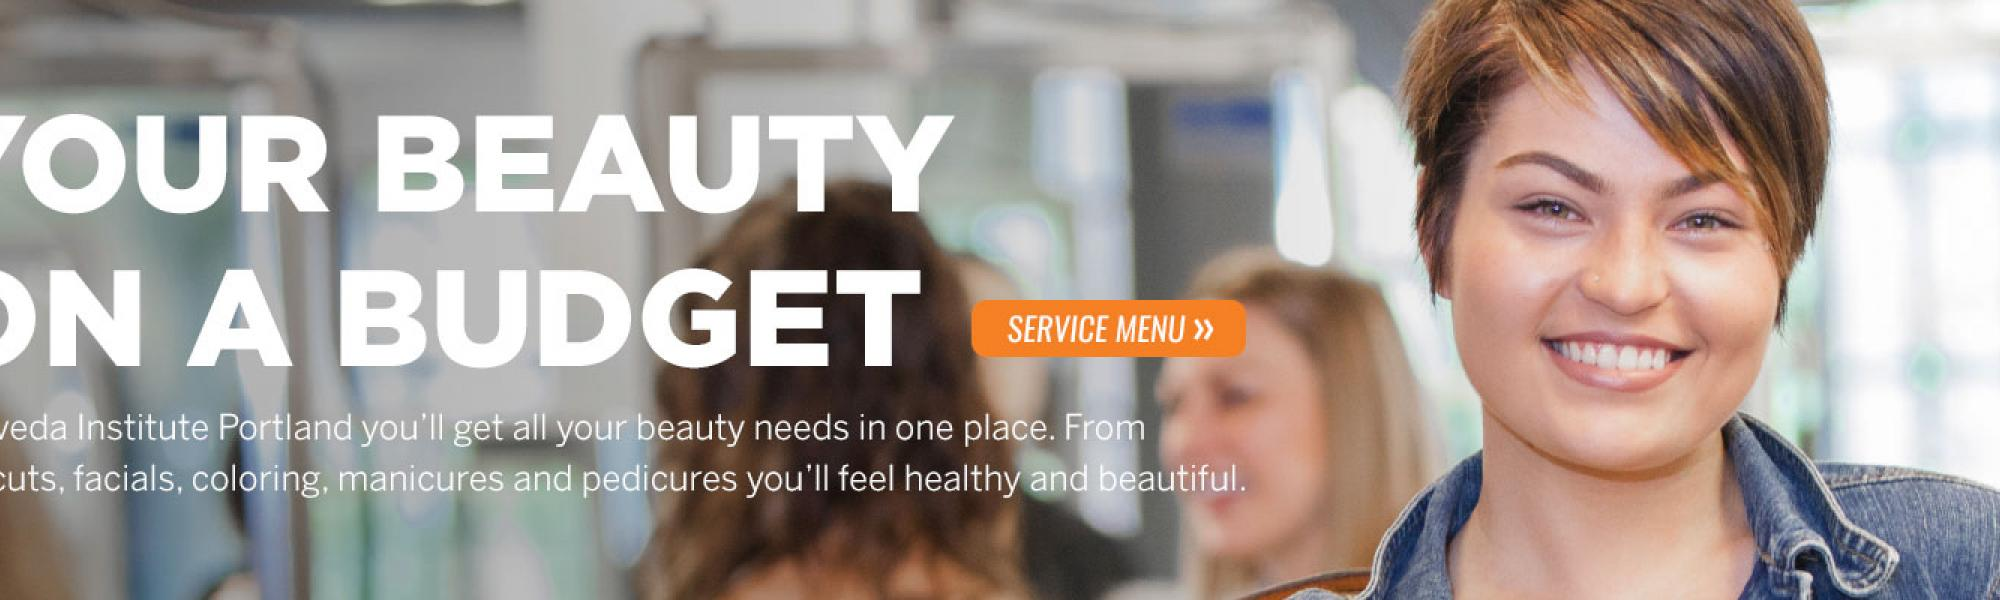 Beauty on a Budget - Aveda Institute Portland